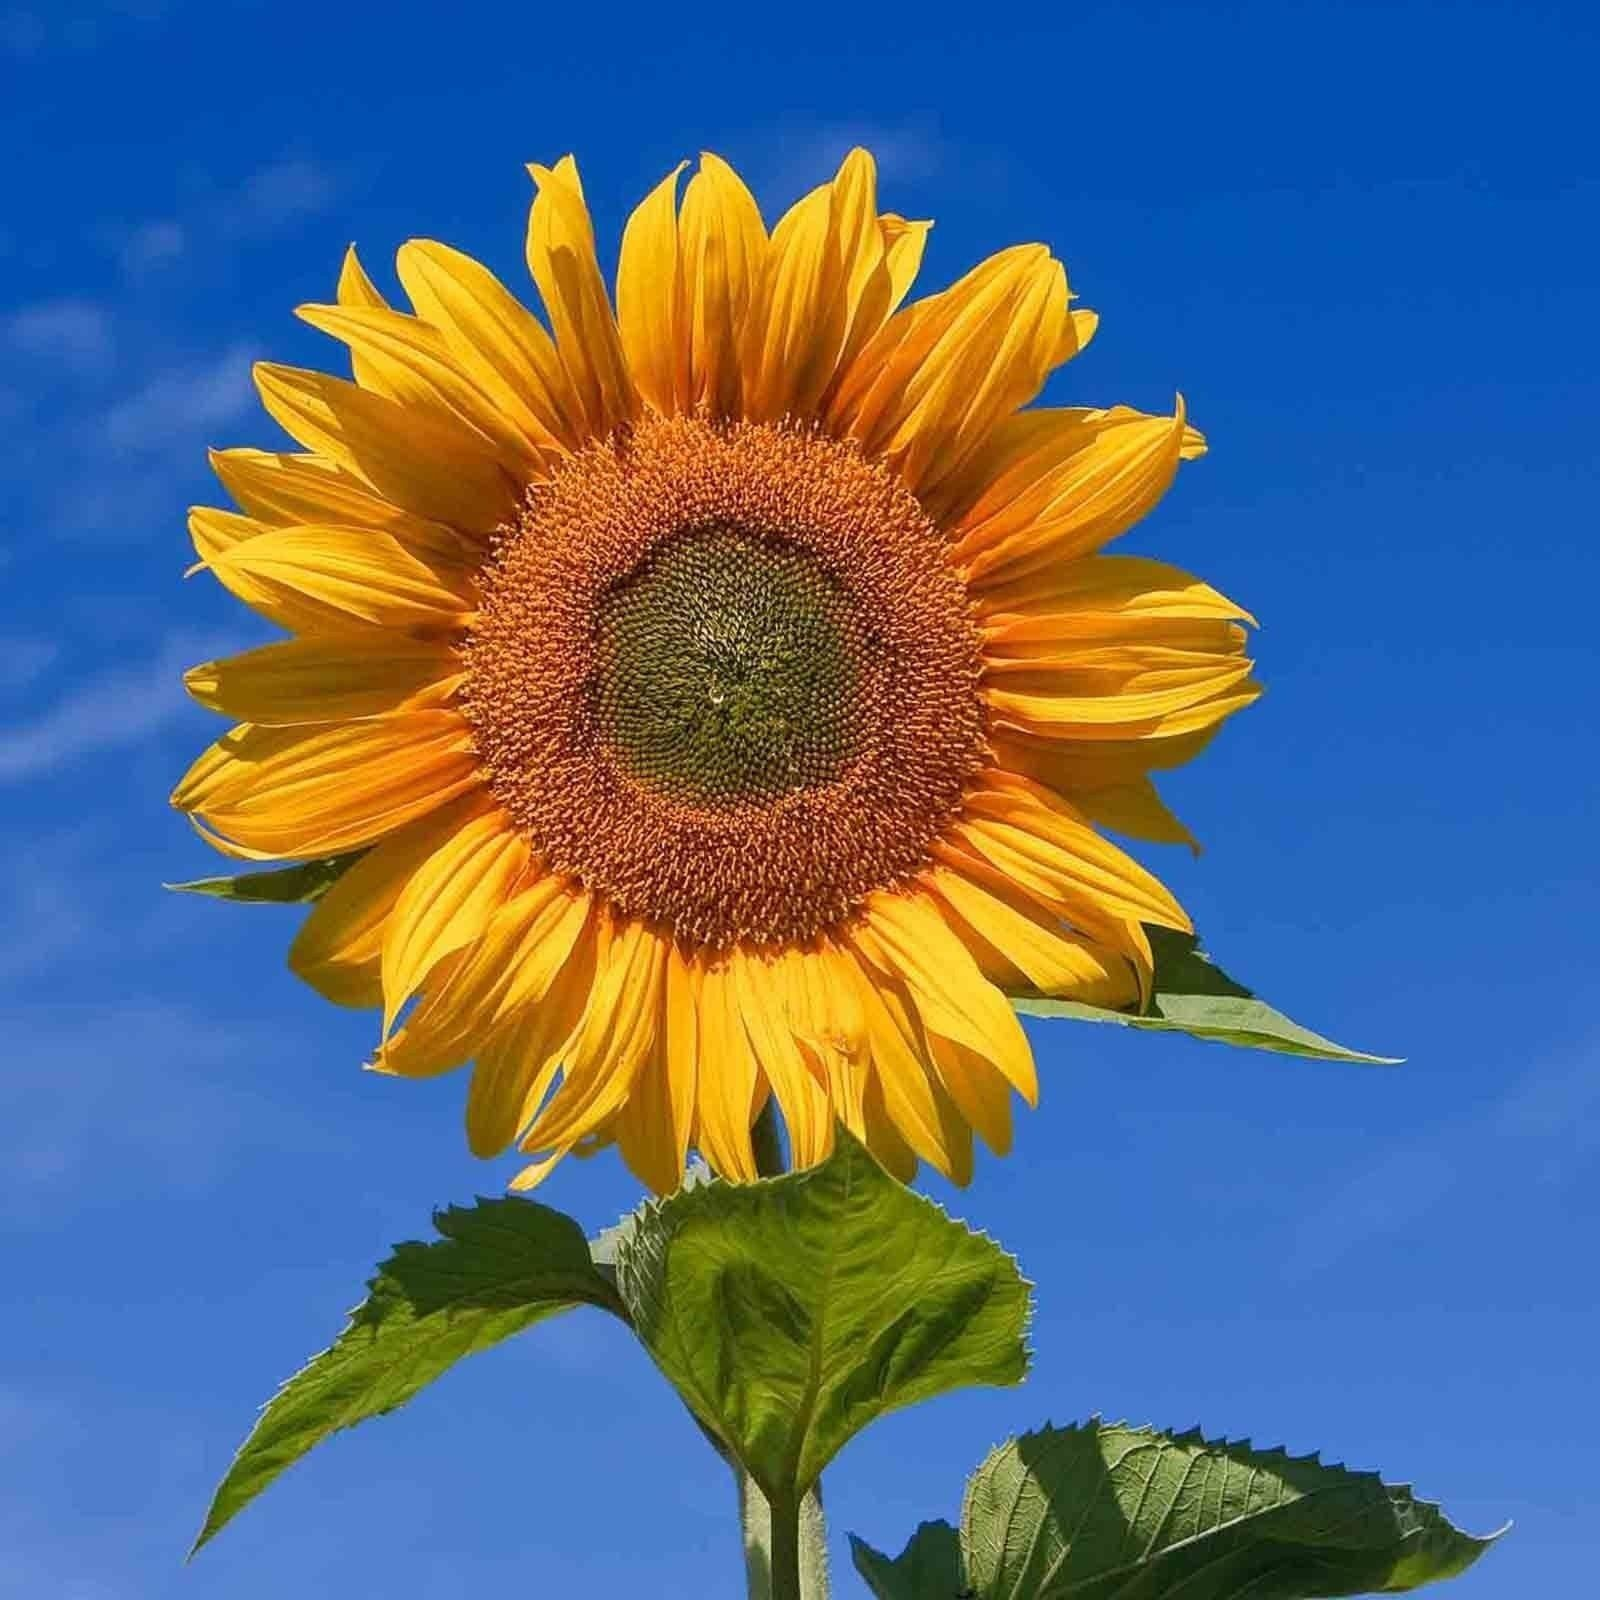 Details about 20 TAIYO ORGANIC SUNFLOWER SEEDS TALL FREE